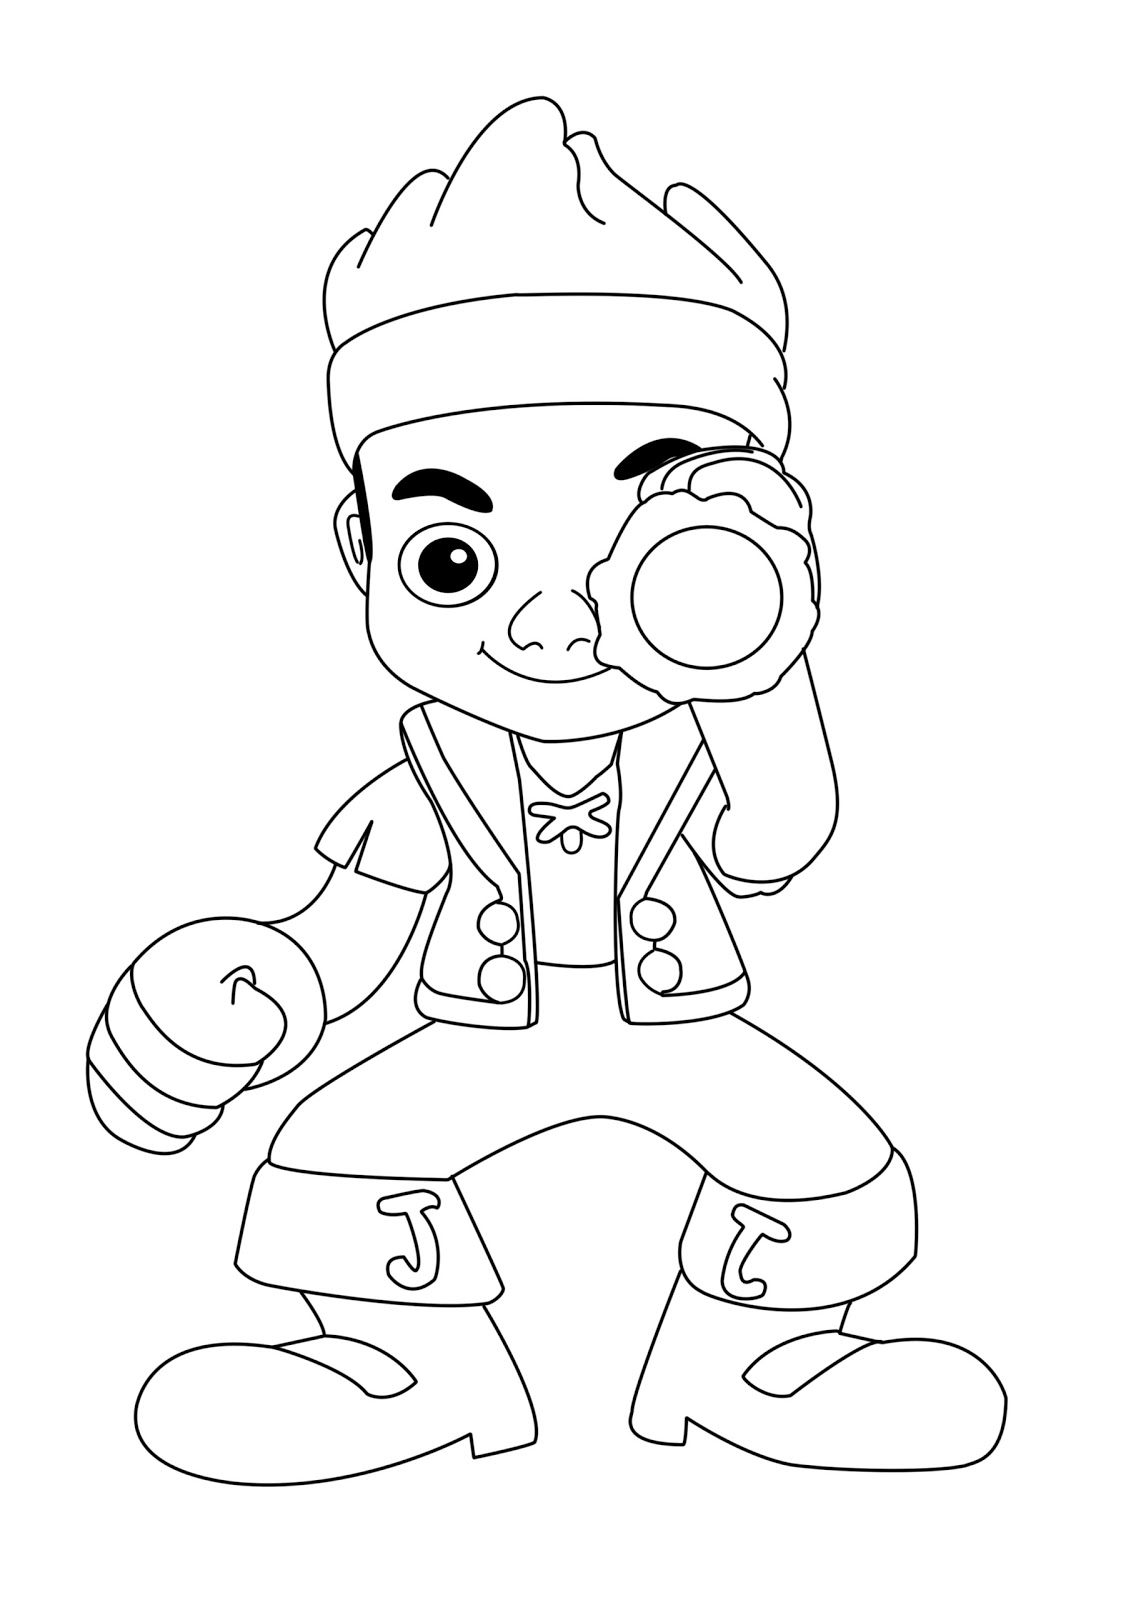 Jake and the neverland pirates coloring pages online for Jake the pirate coloring pages